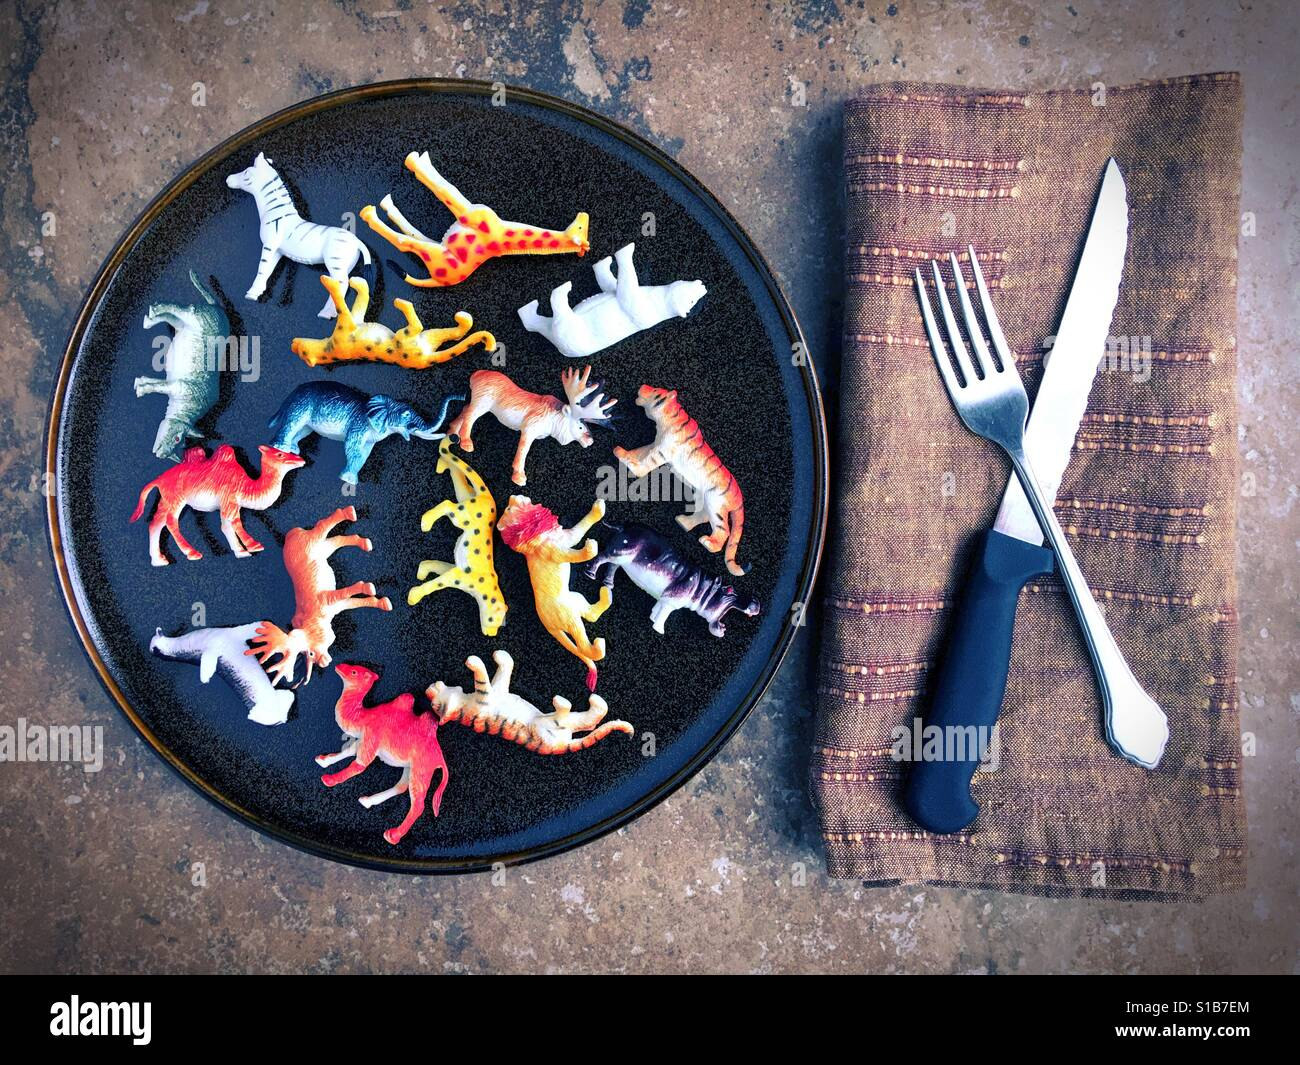 Plastic toy animals on a plate next to a knife and fork. - Stock Image